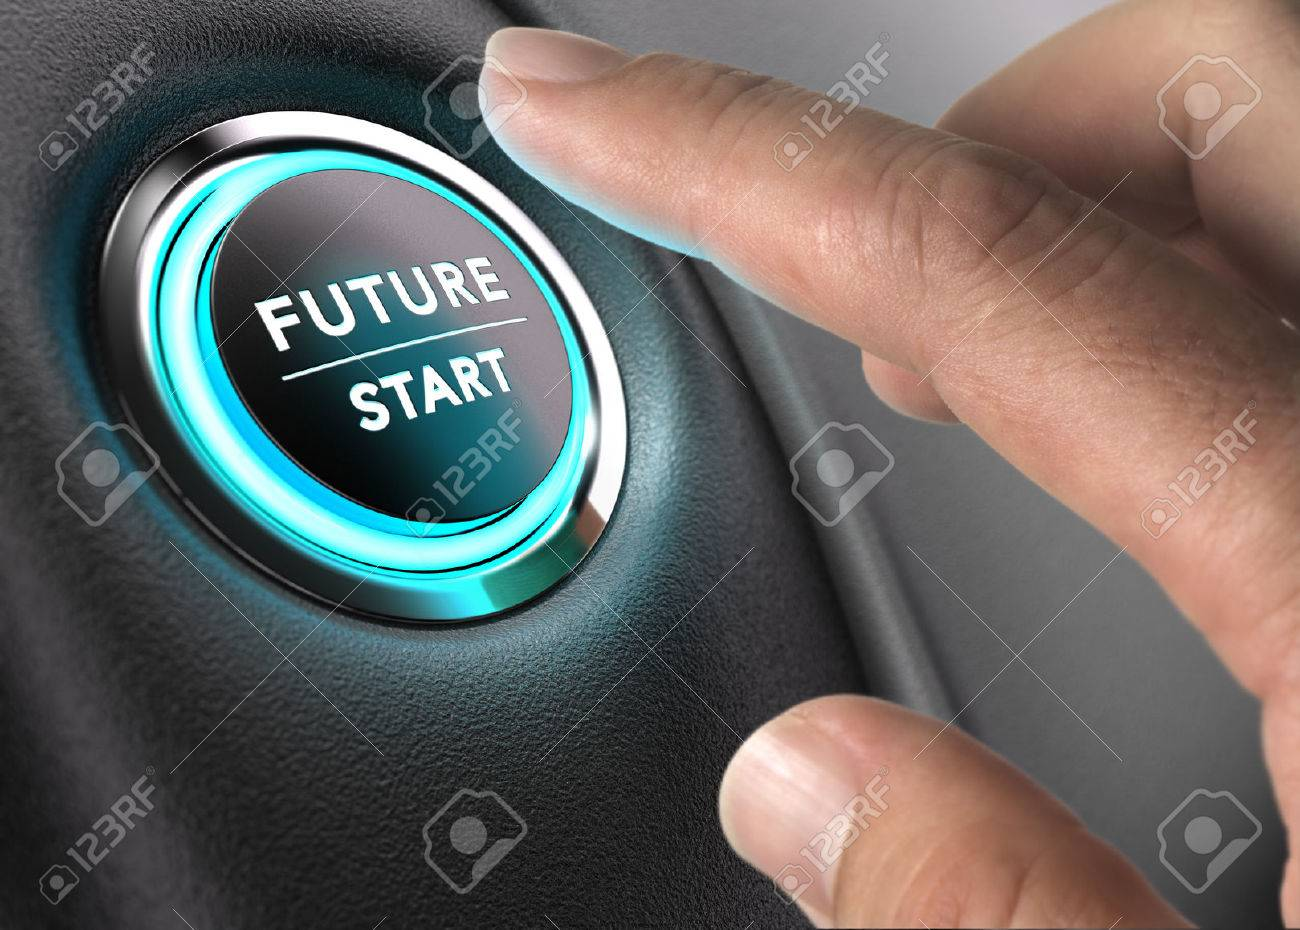 Finger about to press future button with blue light over black and grey background. Concept image for illustration of change or strategic vision. Stock Illustration - 51242997